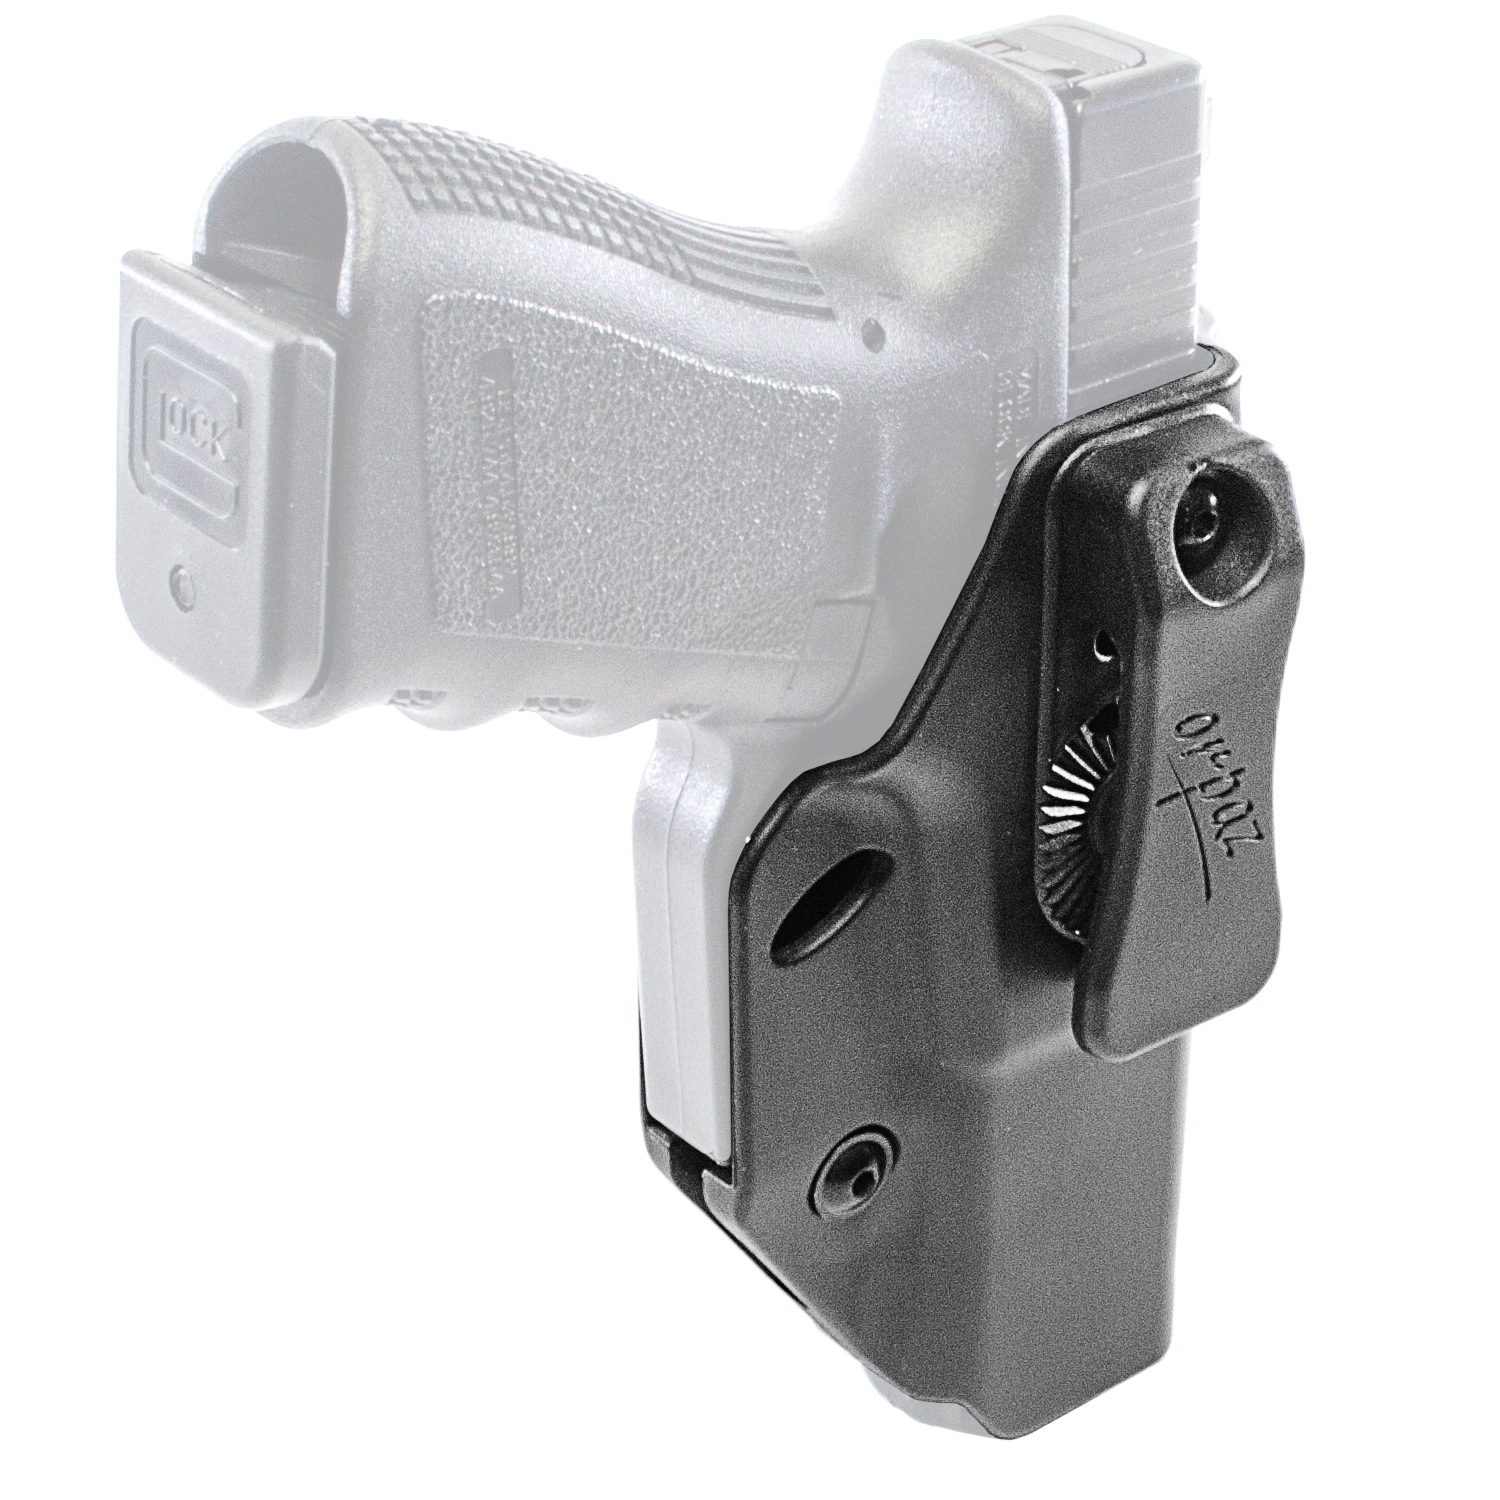 Orpaz Glock Concealed Carry Holster IWB Holster for Glock 19, 17, 22, 23, 26, 27 by Orpaz